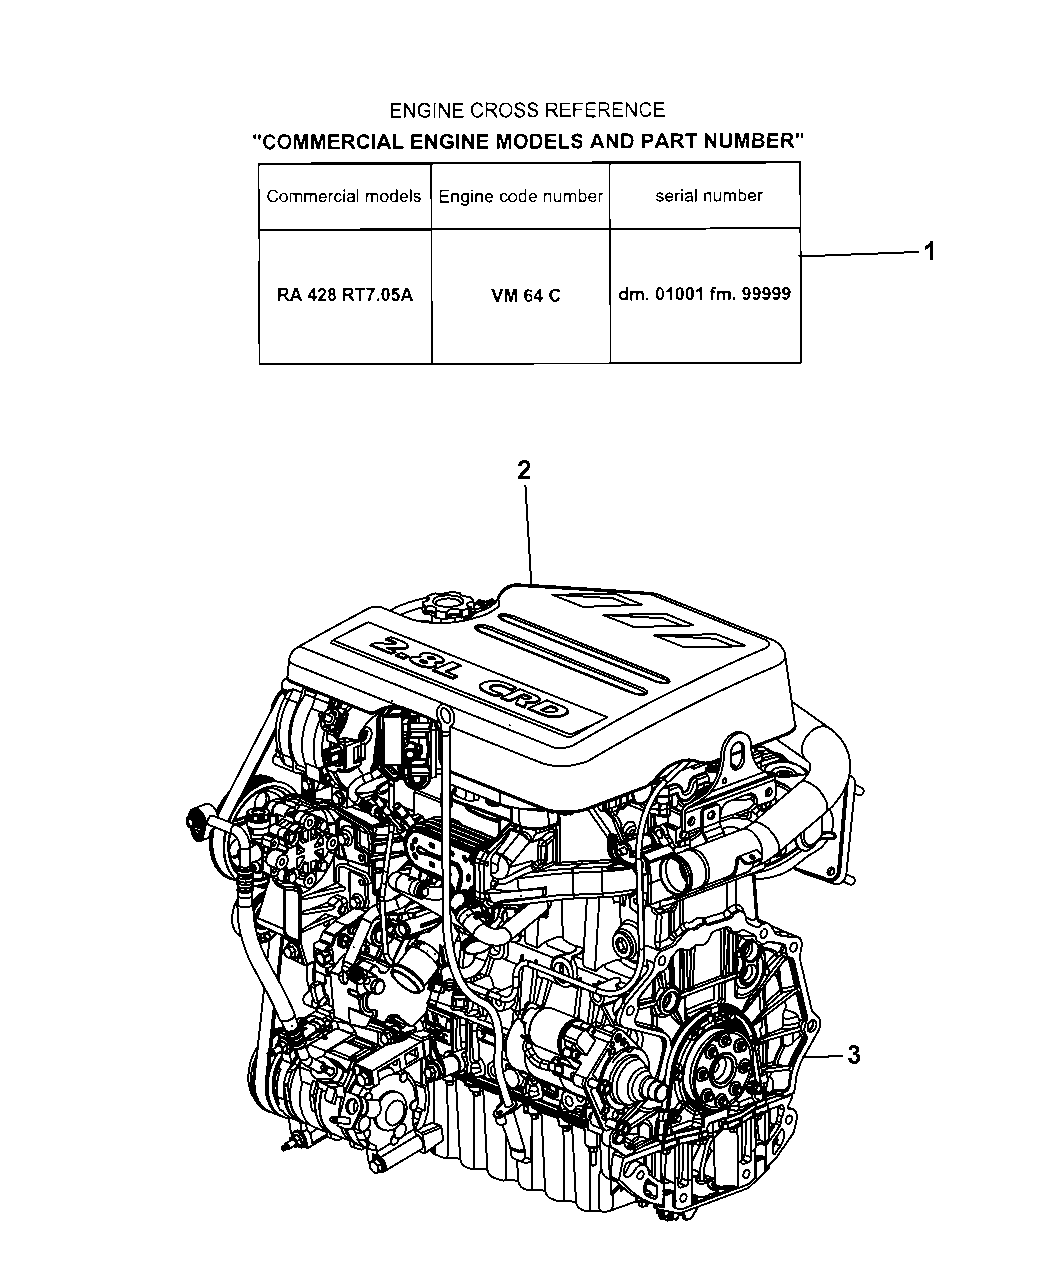 2012 Chrysler Engine Diagram John Deere 790 Tractor Wiring Diagrams Bege Wiring Diagram